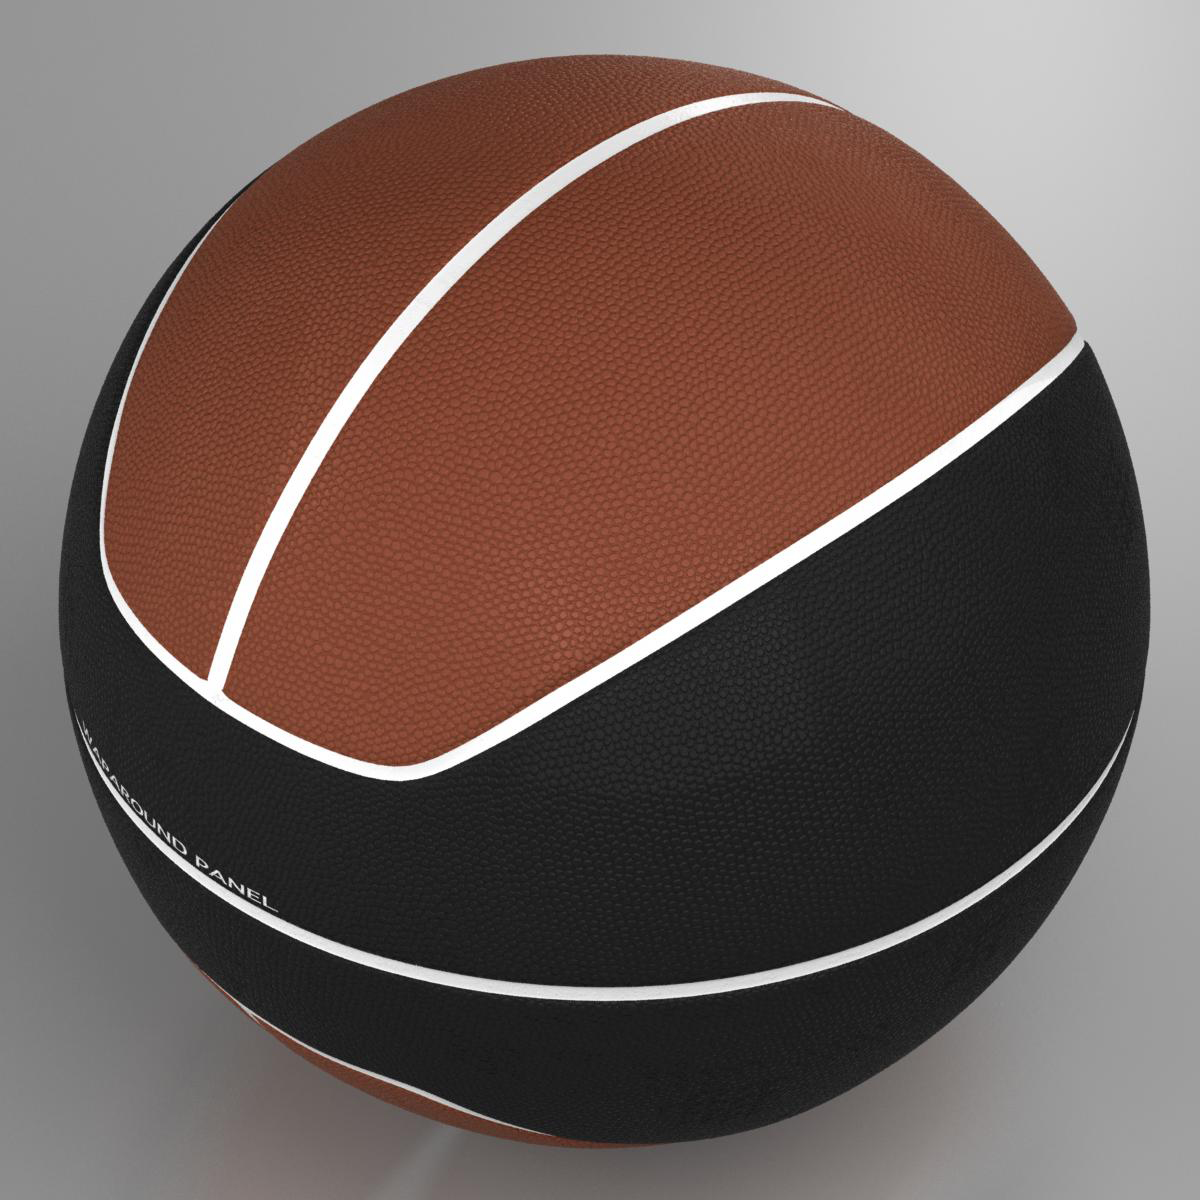 basketball ball euro brown-black 3d model 3ds max fbx c4d ma mb obj 165098